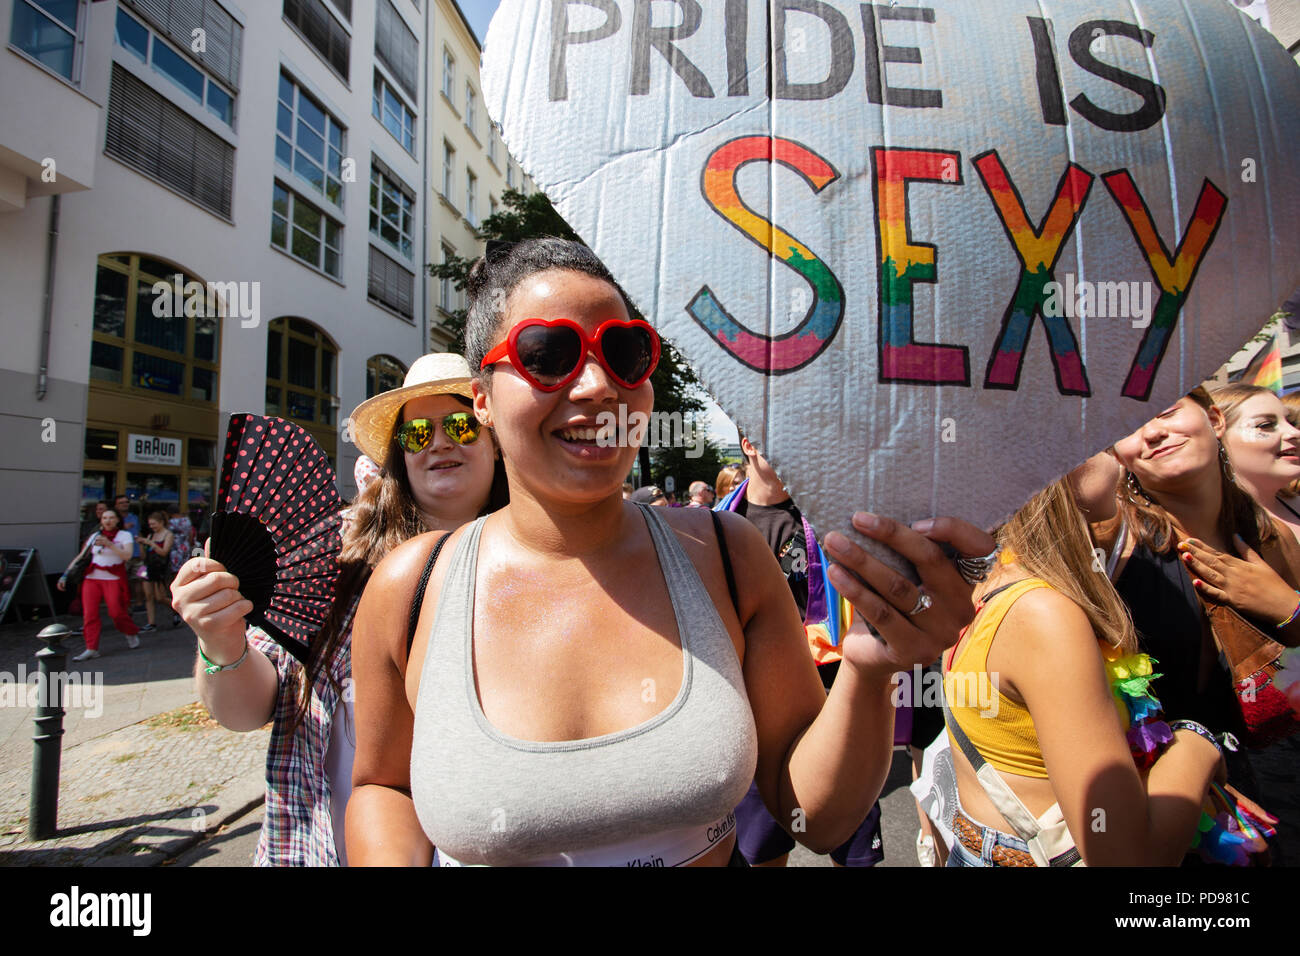 Christopher Street Day Pride parade, Berlin, Germany - Stock Image